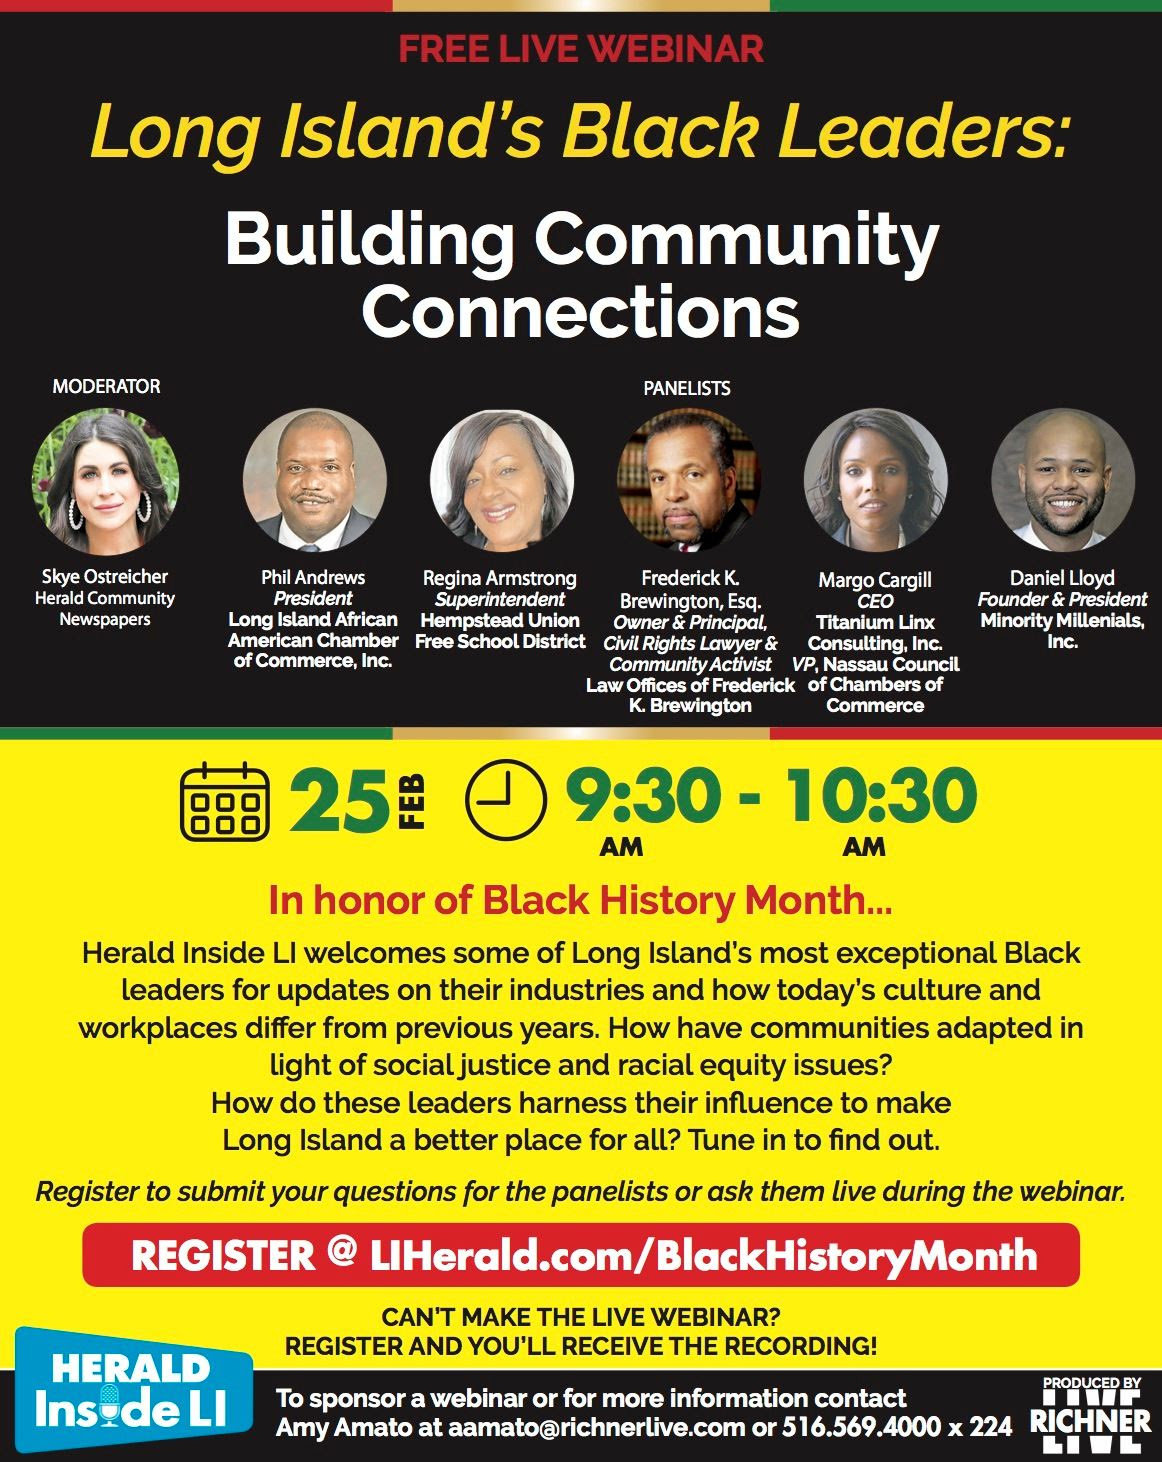 Herald Inside LI will host a webinar featuring Black leaders on Long Island on February, 25 at 9:30 a.m.